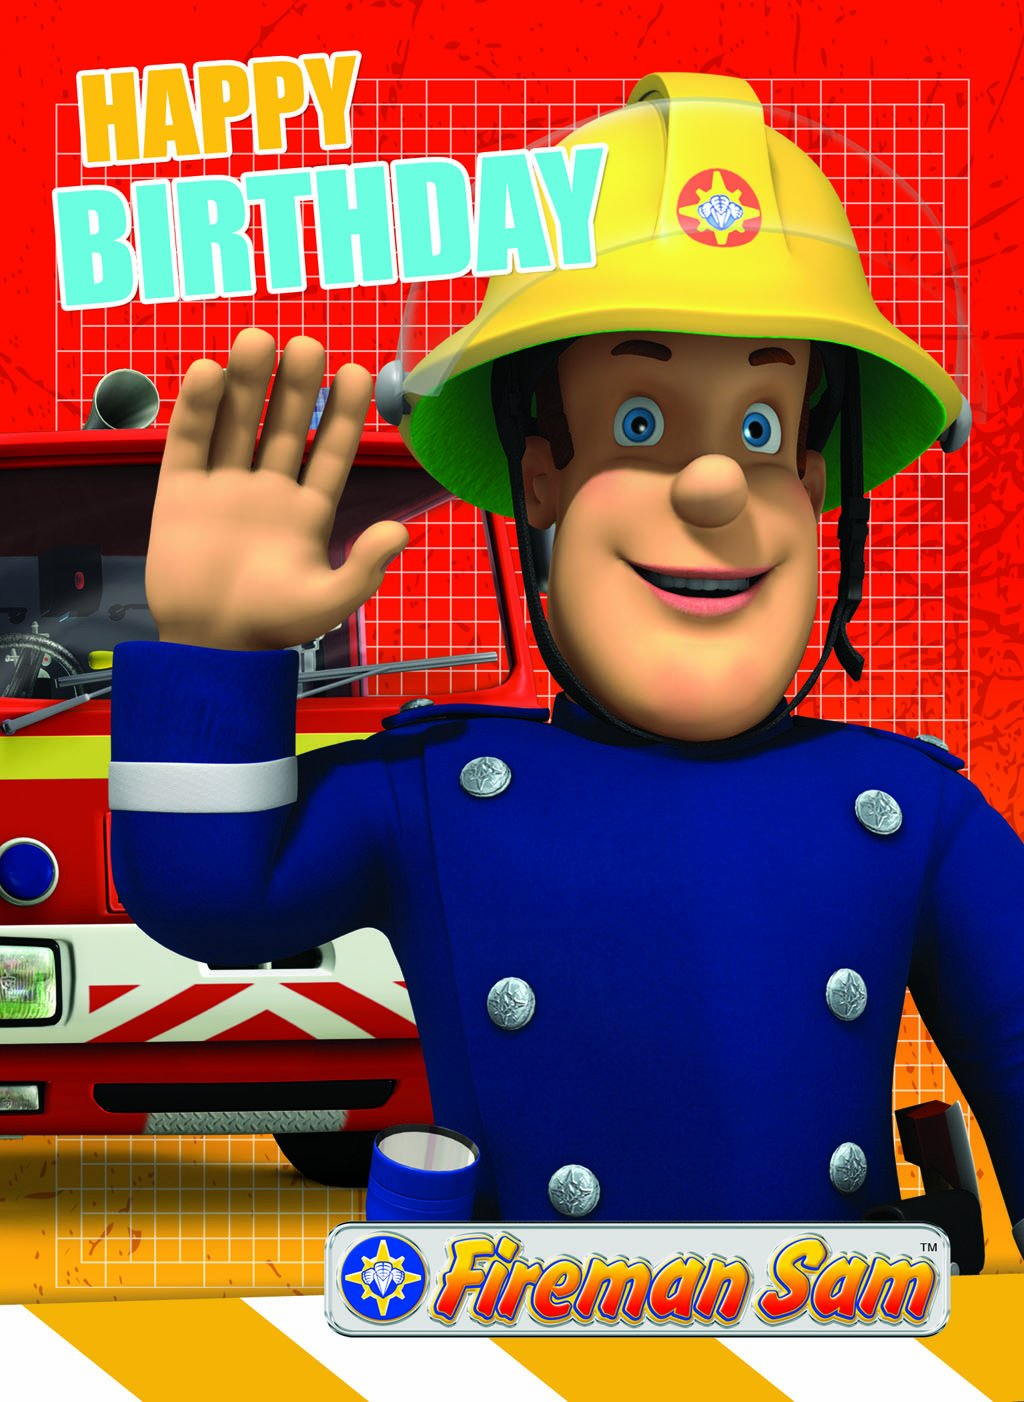 Amazon Fireman Sam Birthday Card Toys Games – Fireman Sam Birthday Cards